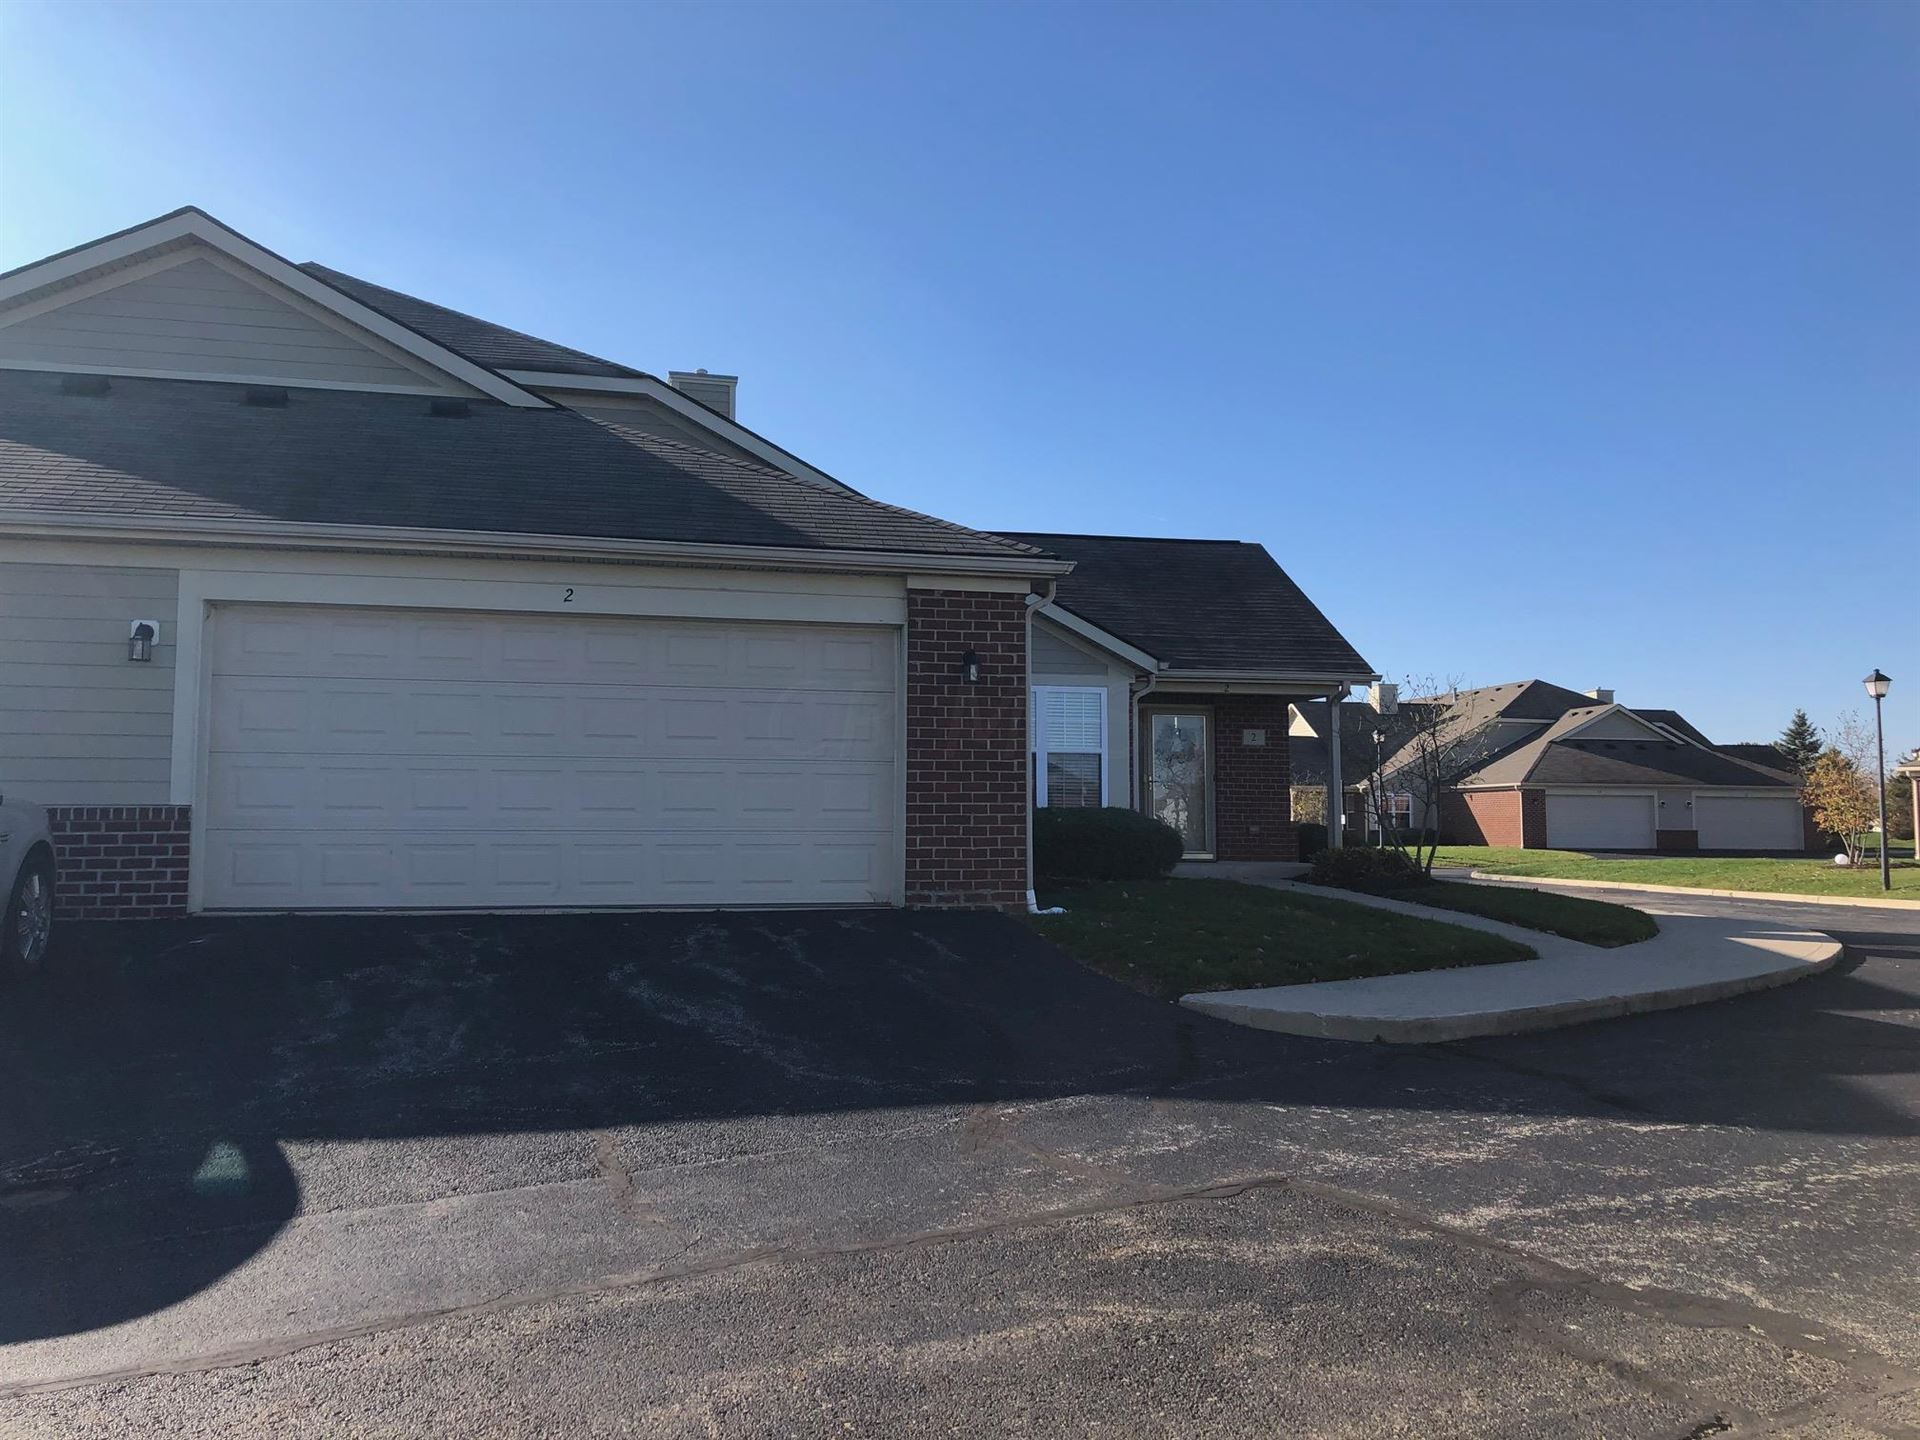 Photo of 2 Greenhedge Circle, Delaware, OH 43015 (MLS # 221005510)